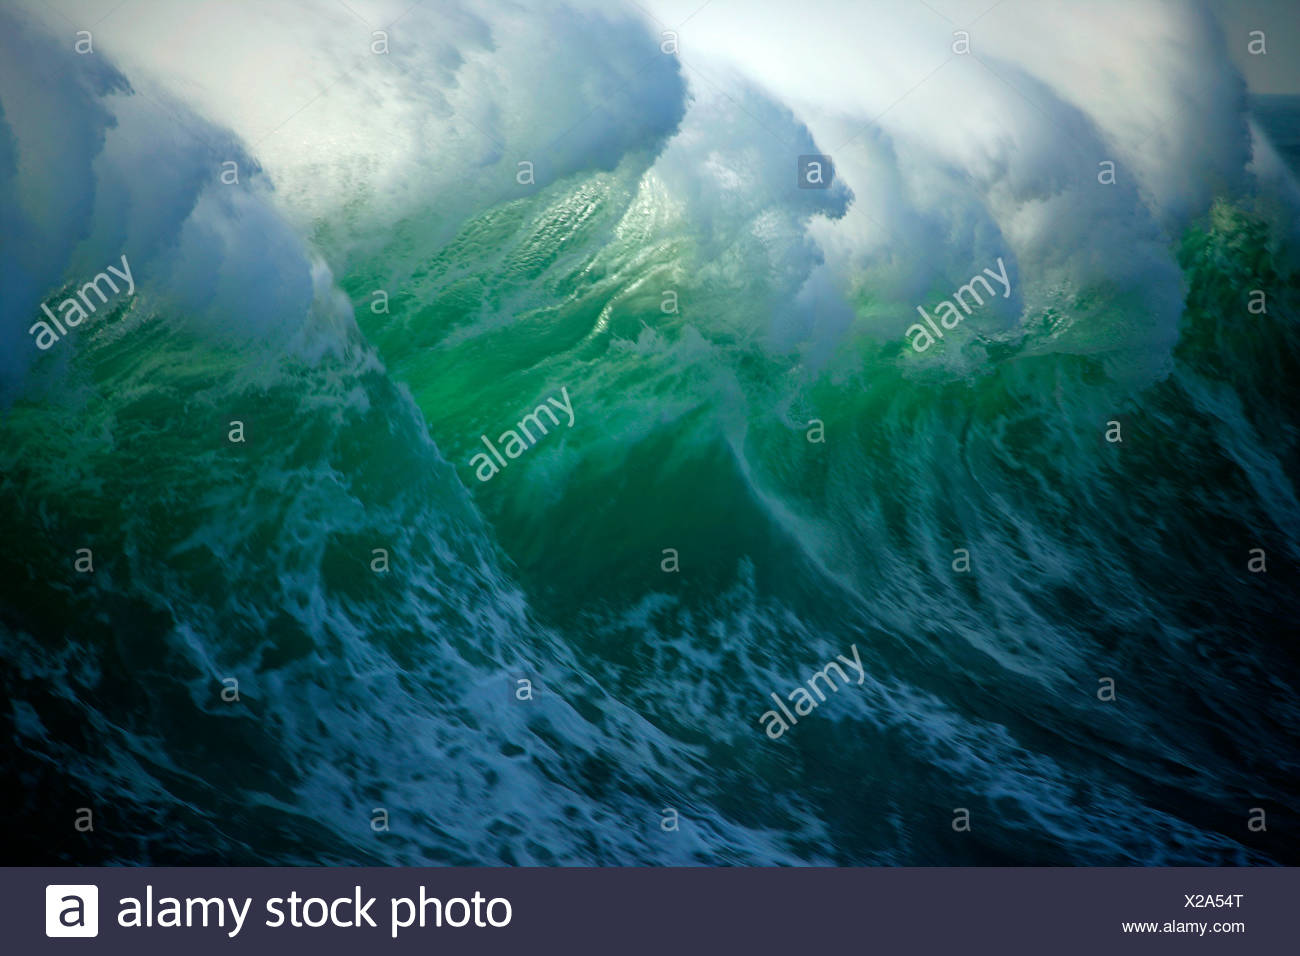 Huge wave off the coast of Vancouver Island, British Columbia, Canada - Stock Image